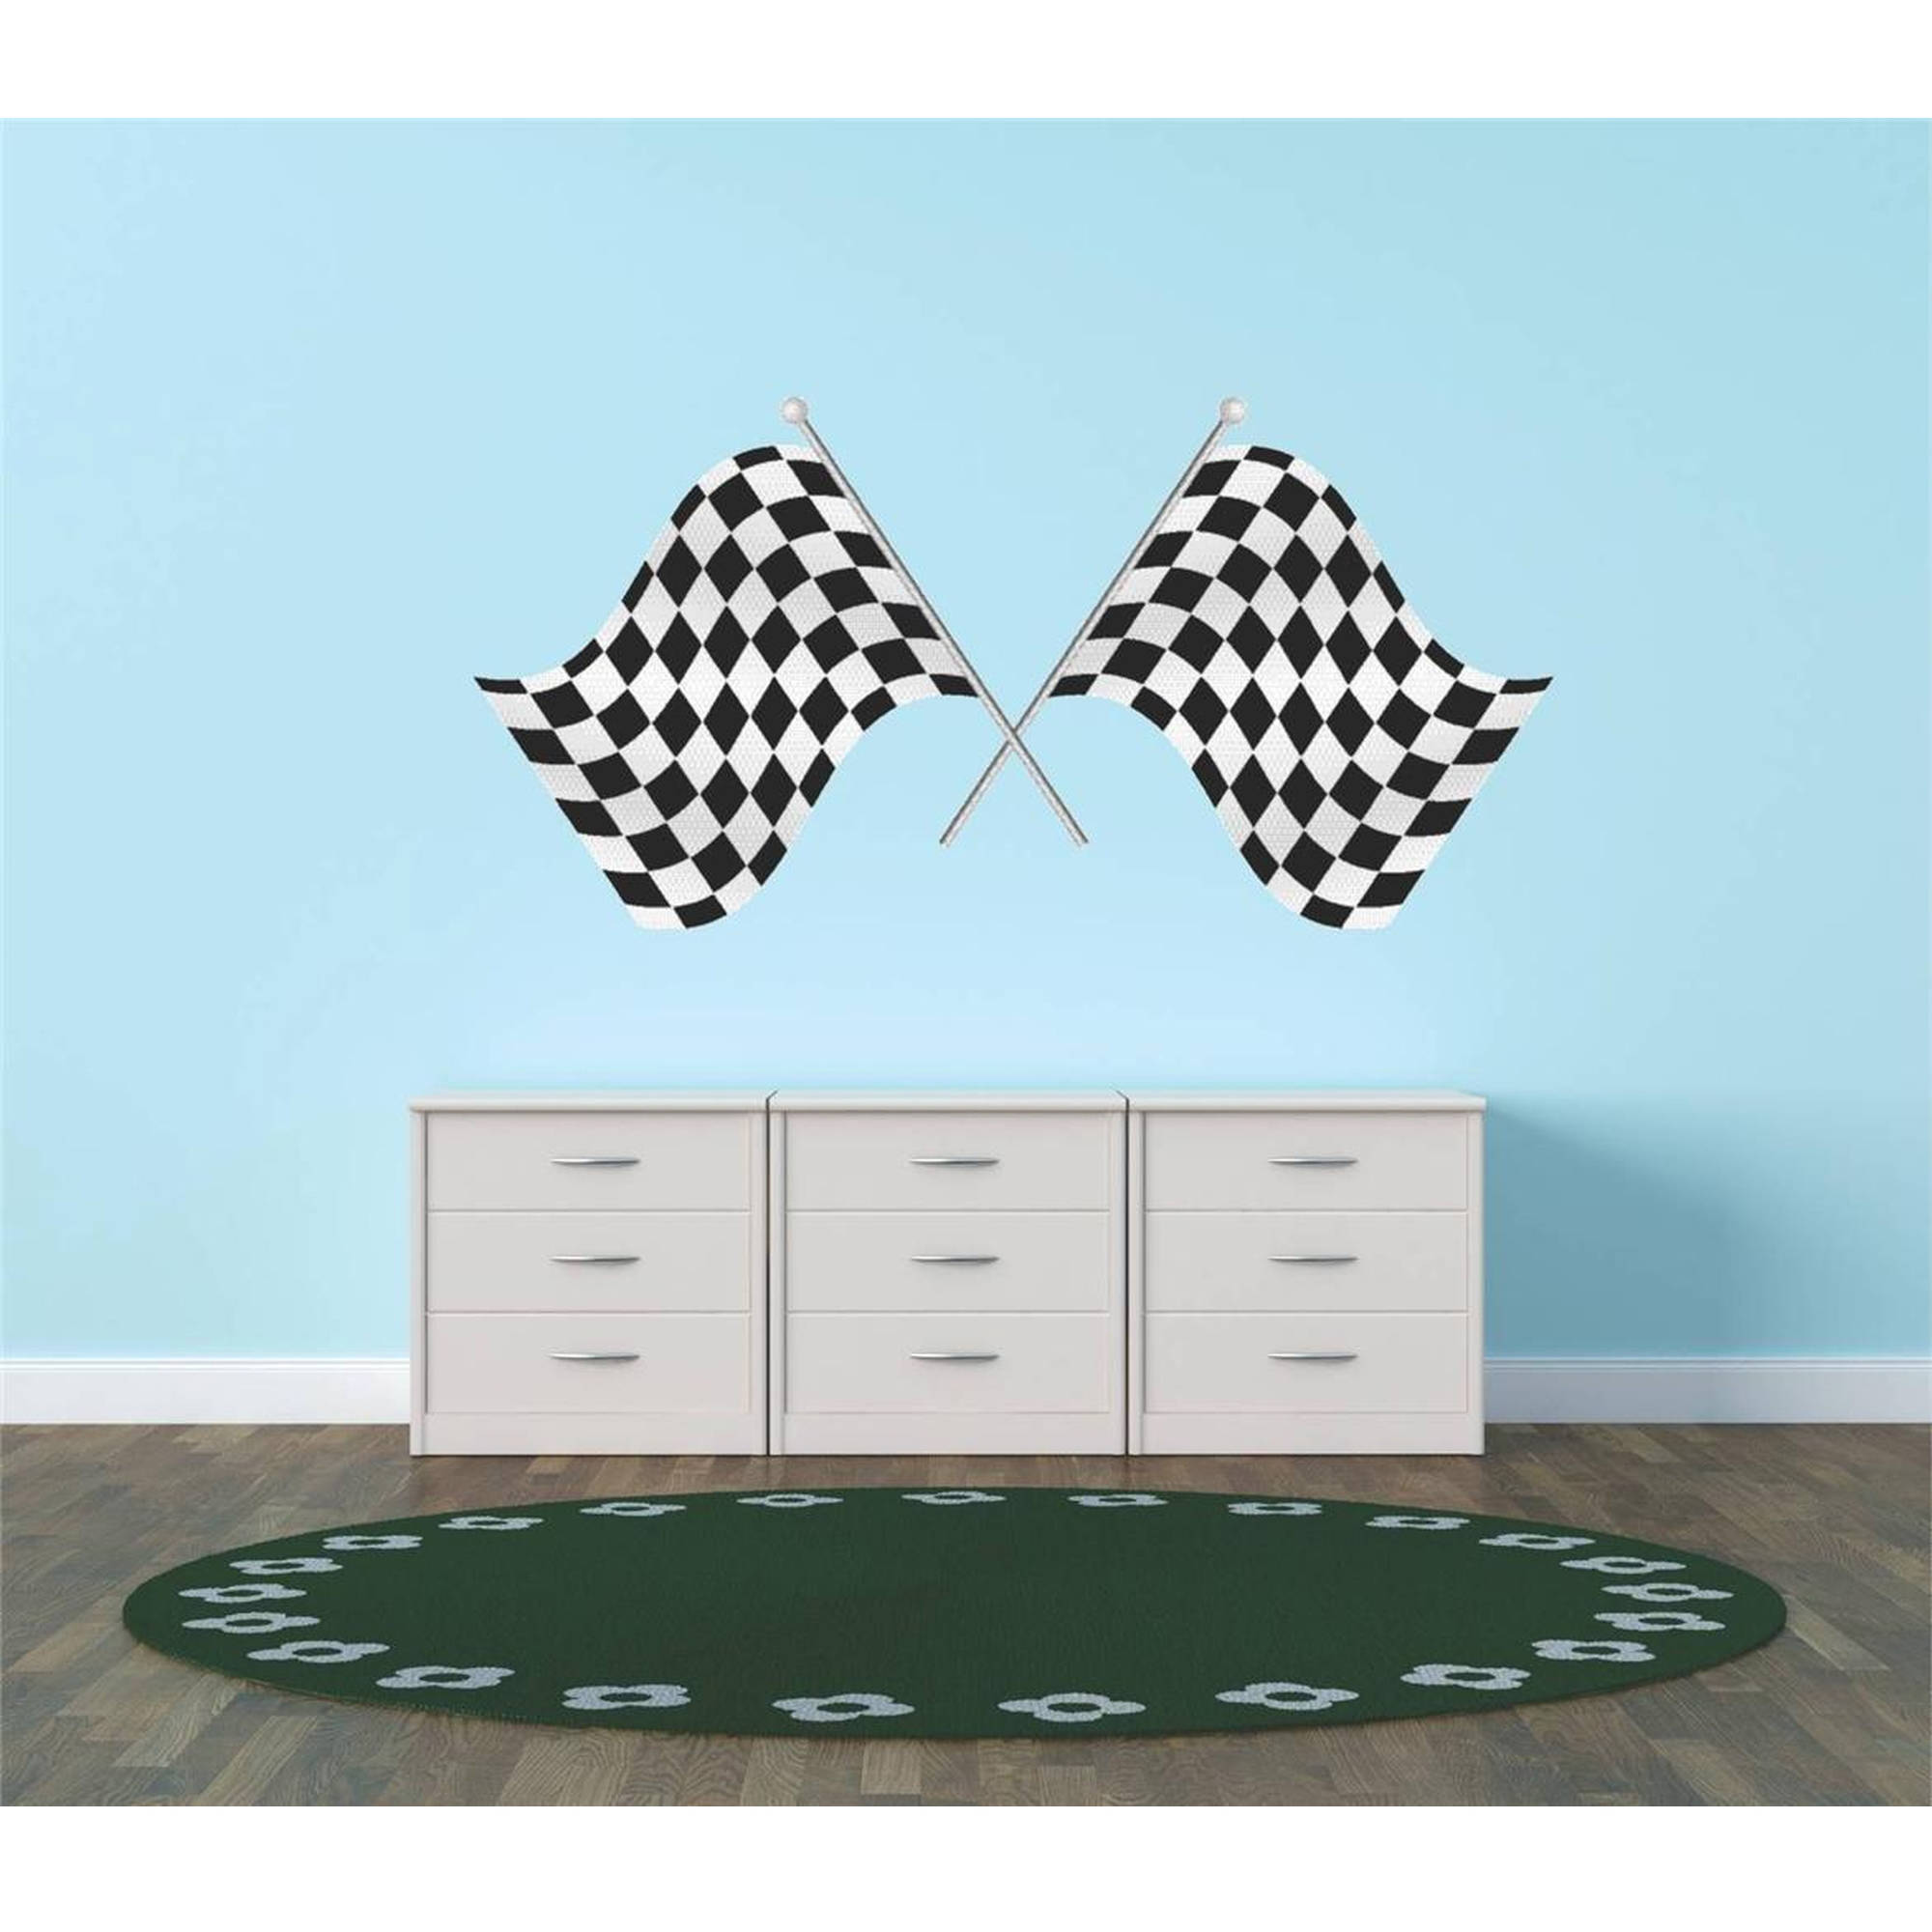 "Race Car Racing Checkered Flags Vinyl Wall Decal, 12"" x 26"", Black and White"